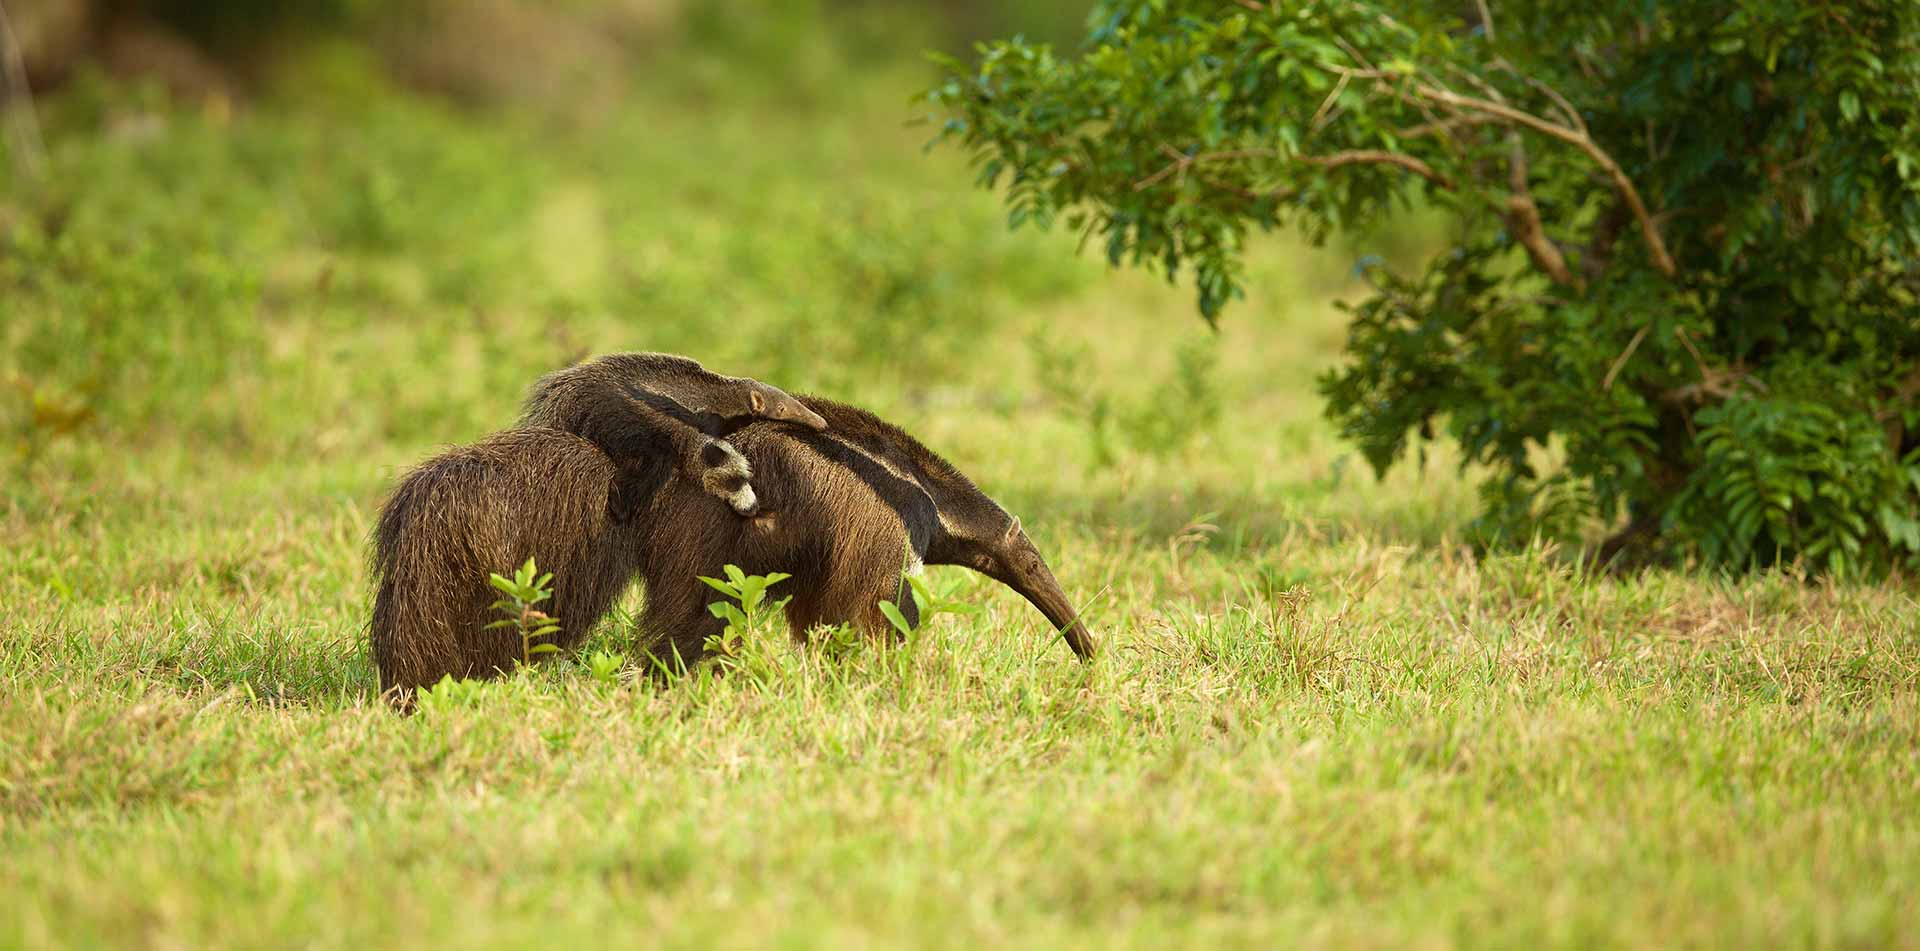 Central America Panama anteater mother and baby in the wild - luxury vacation destinations